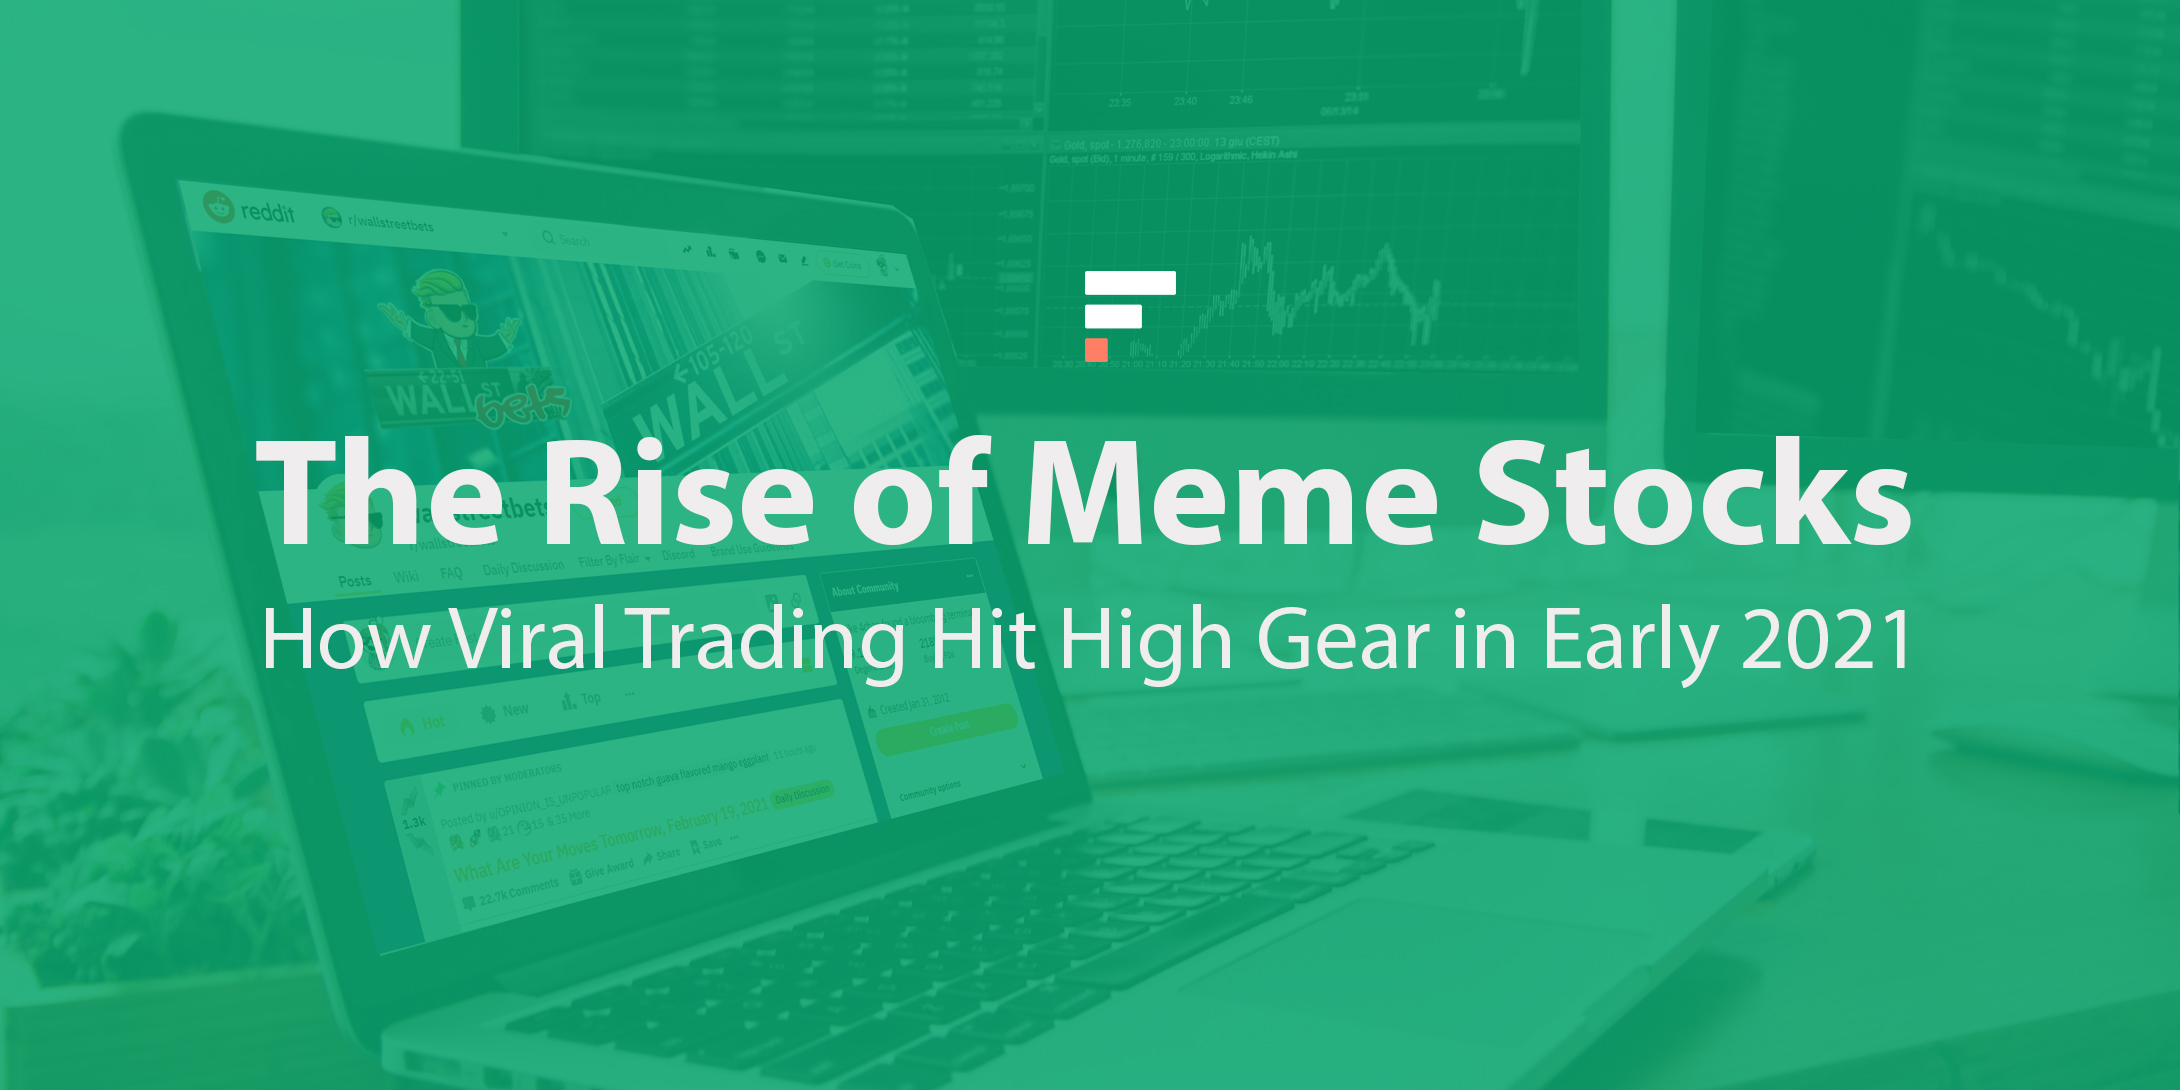 The Rise of Meme Stocks: How Viral Trading Hit High Gear in Early 2021